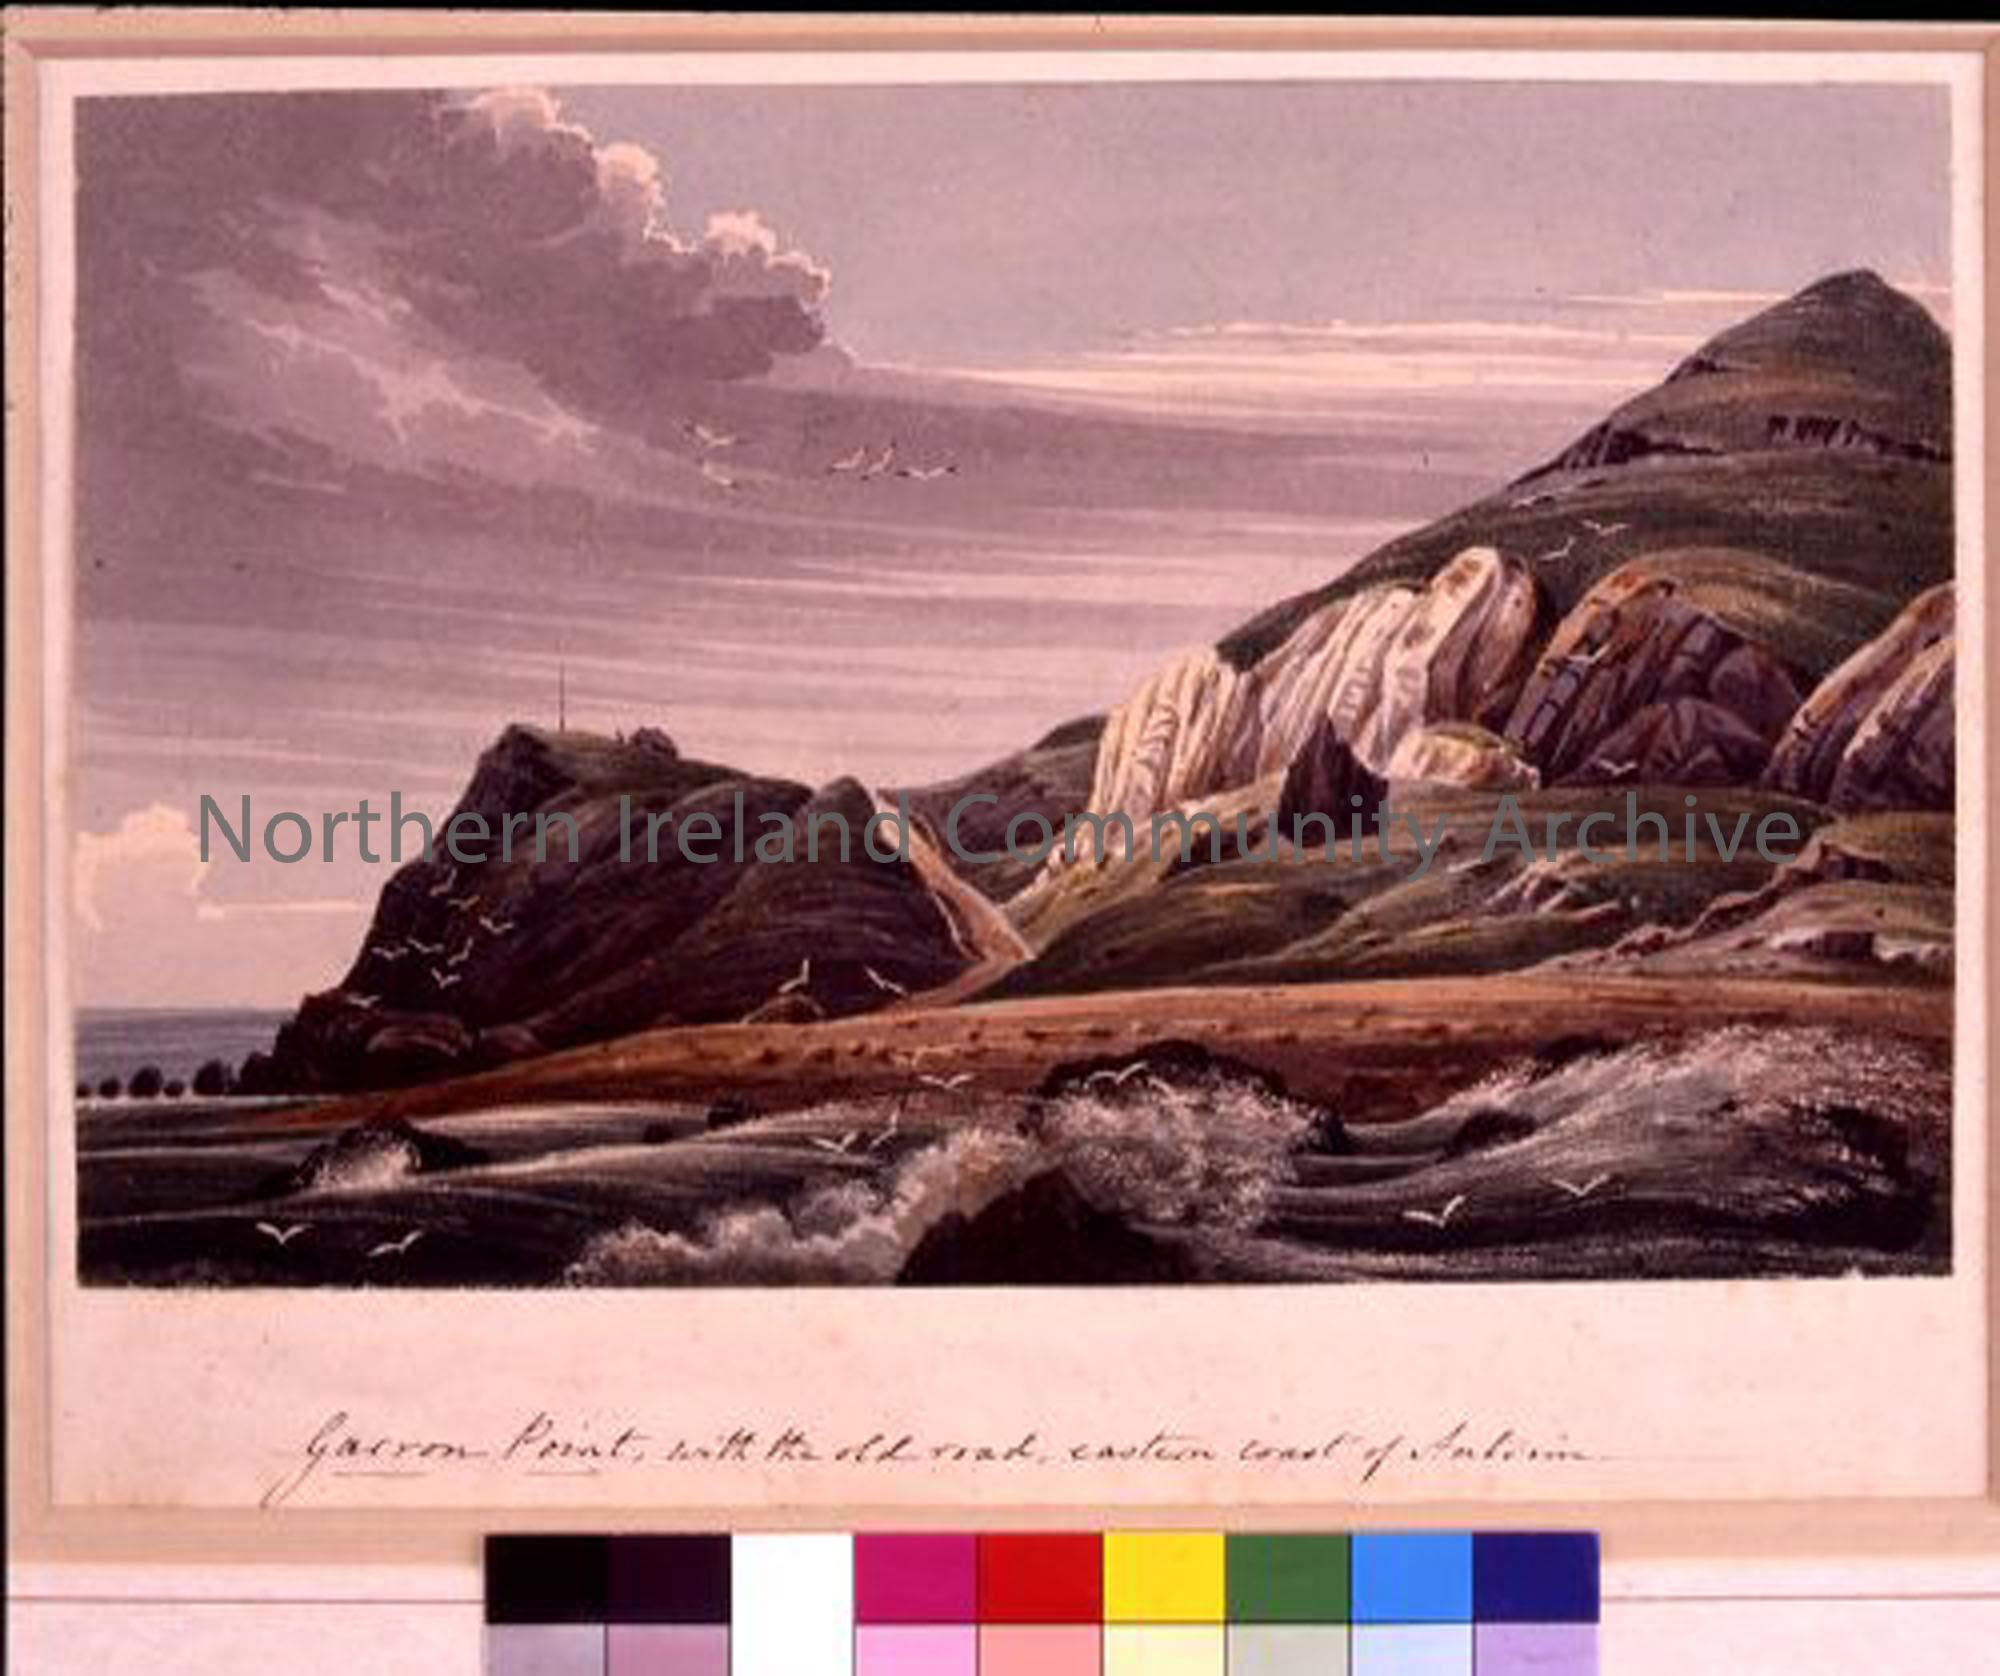 Garron Point, with the old road, eastern coast of Antrim. Watercolour by Andrew Nicholl.   (3568)